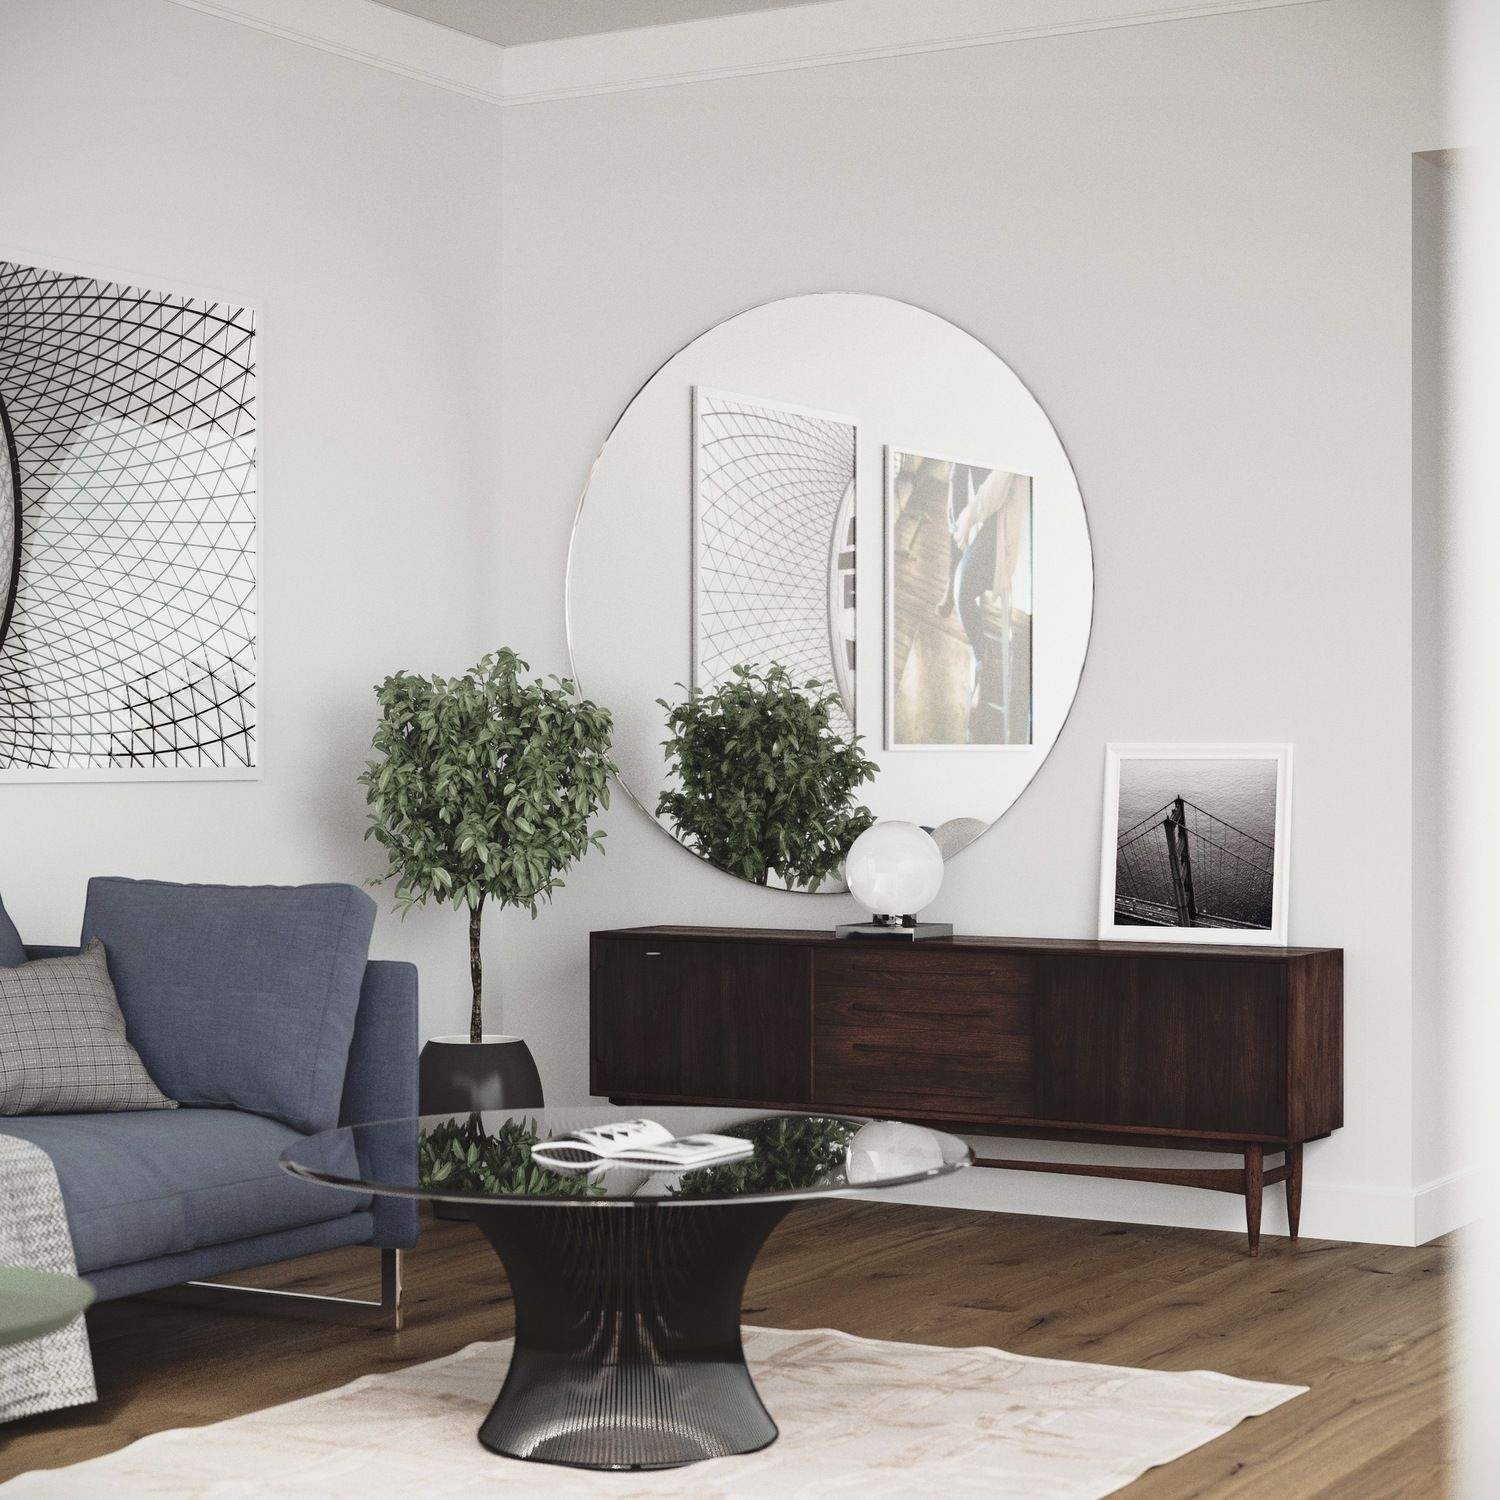 Wall Mirrors Large Round Wall Mirror Wall Decor Living Room Living Room Wall